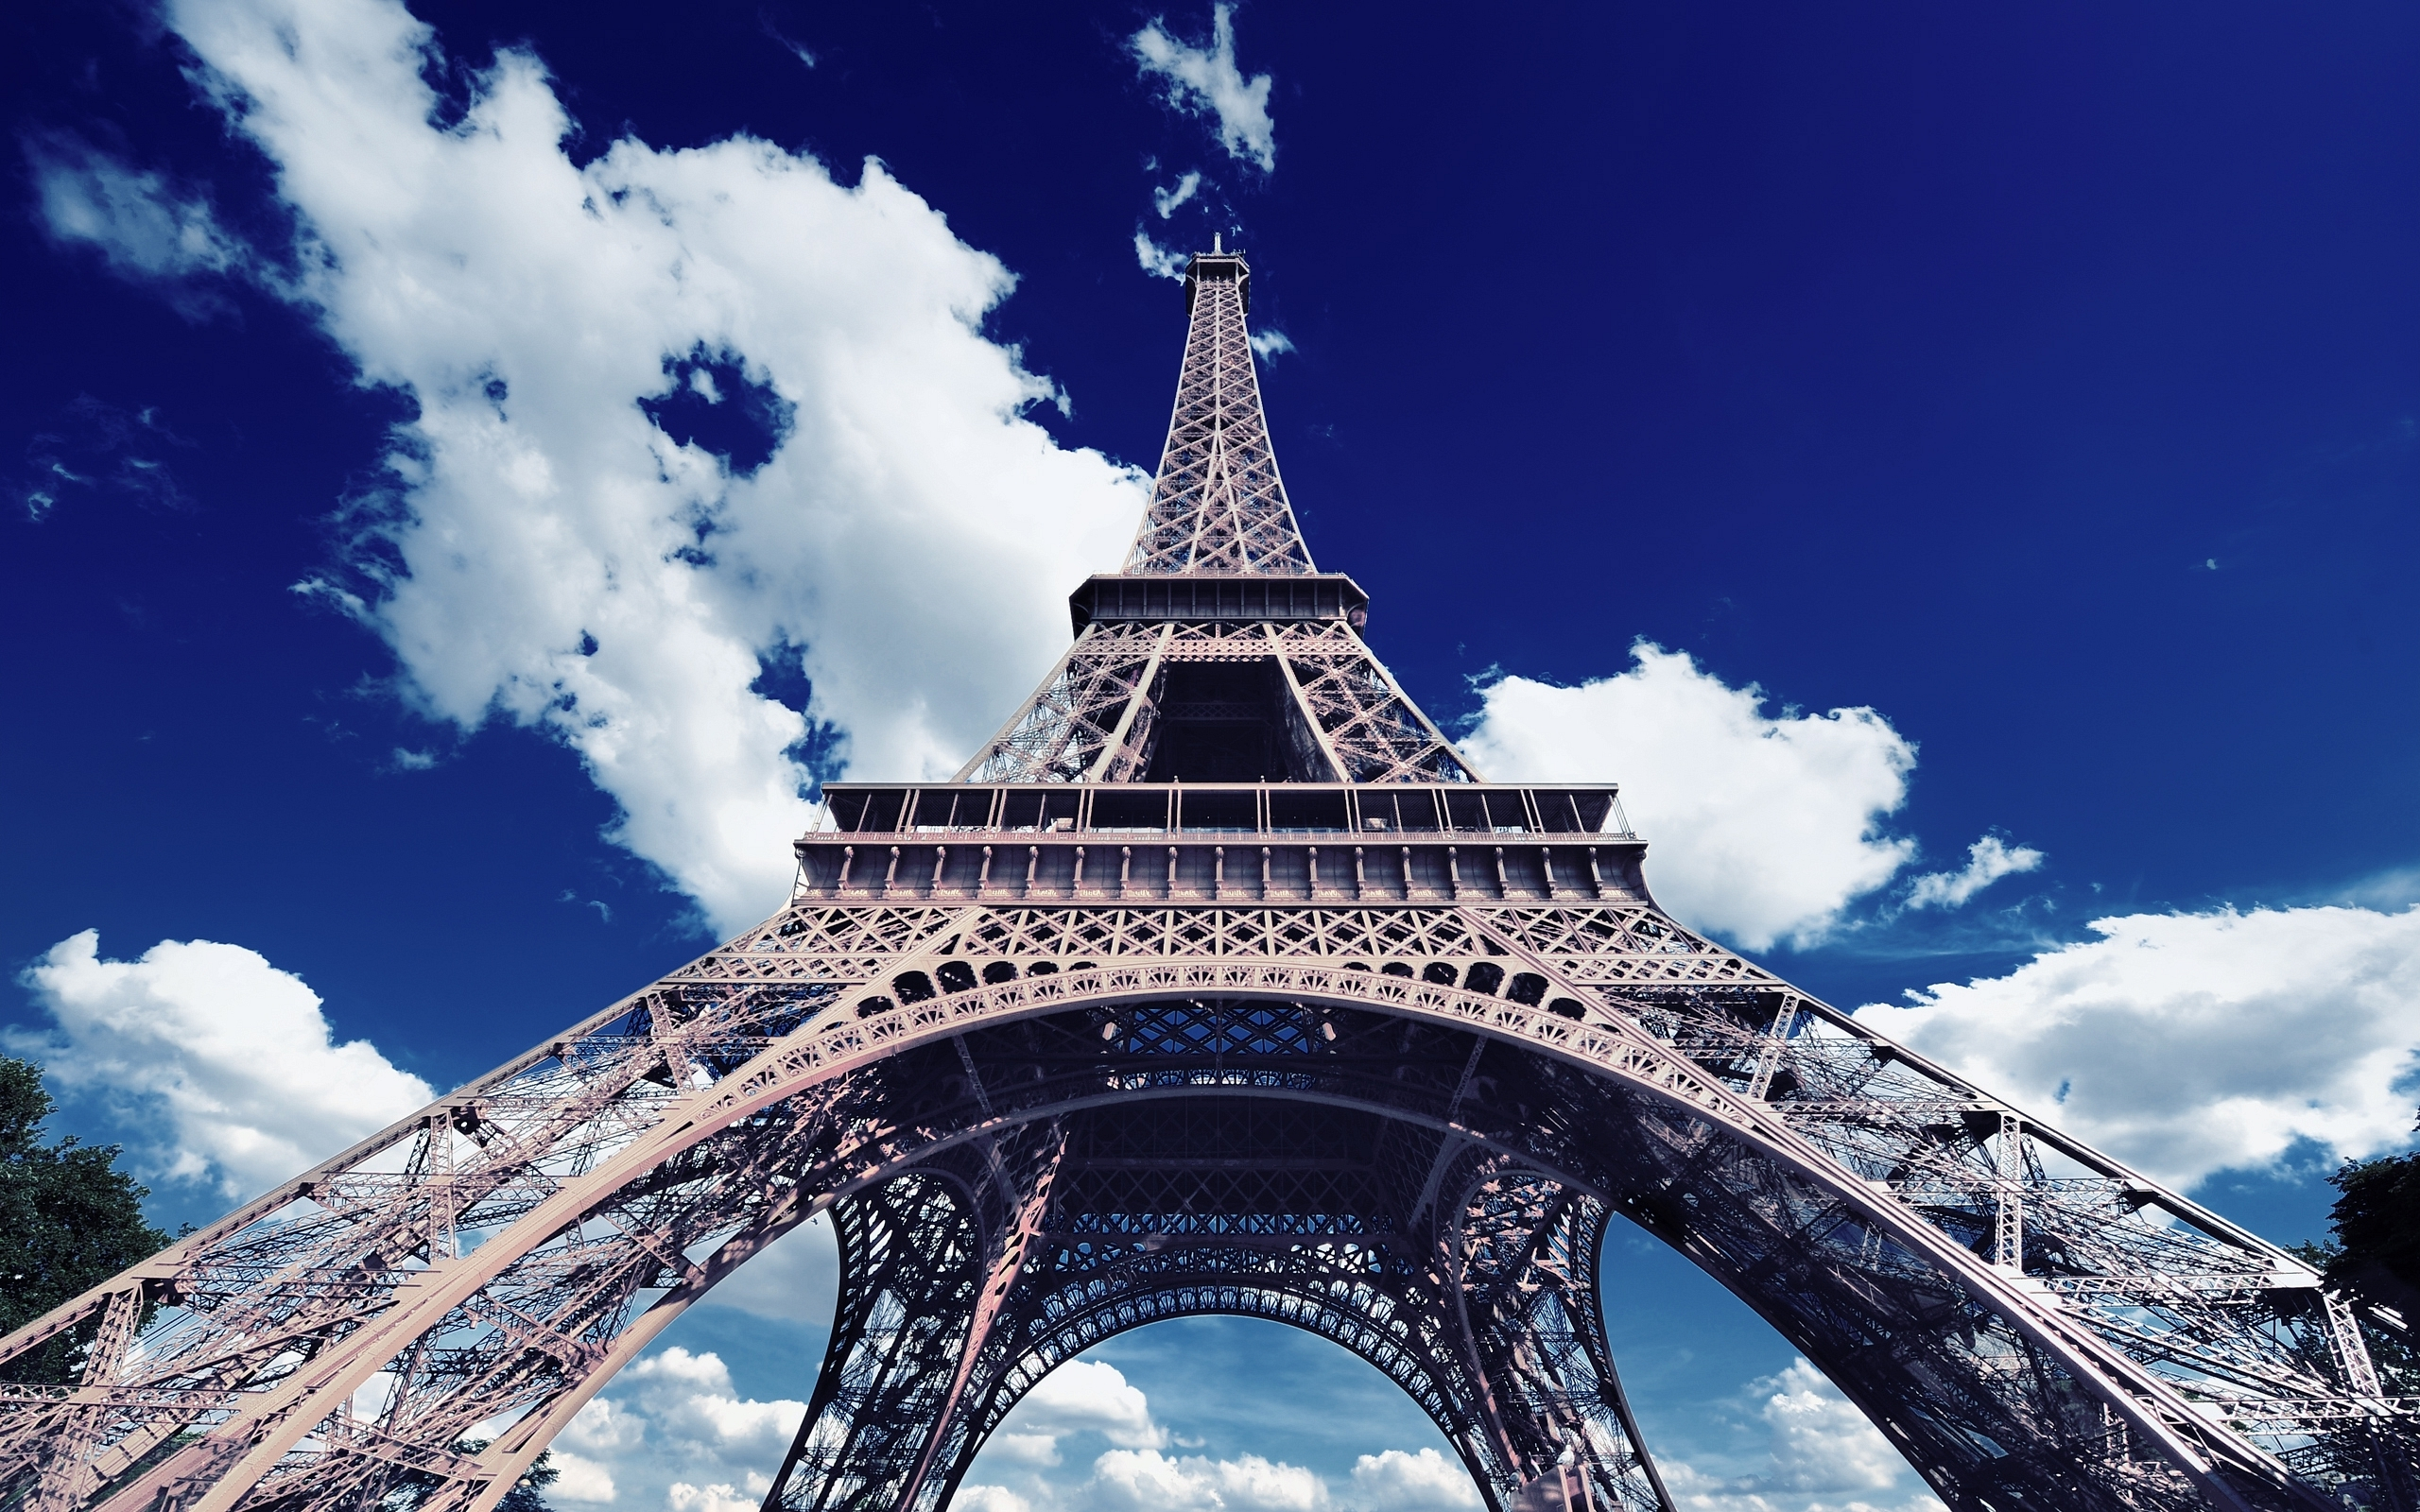 Eiffel Tower Paris France Wallpaper 5 2560x1600